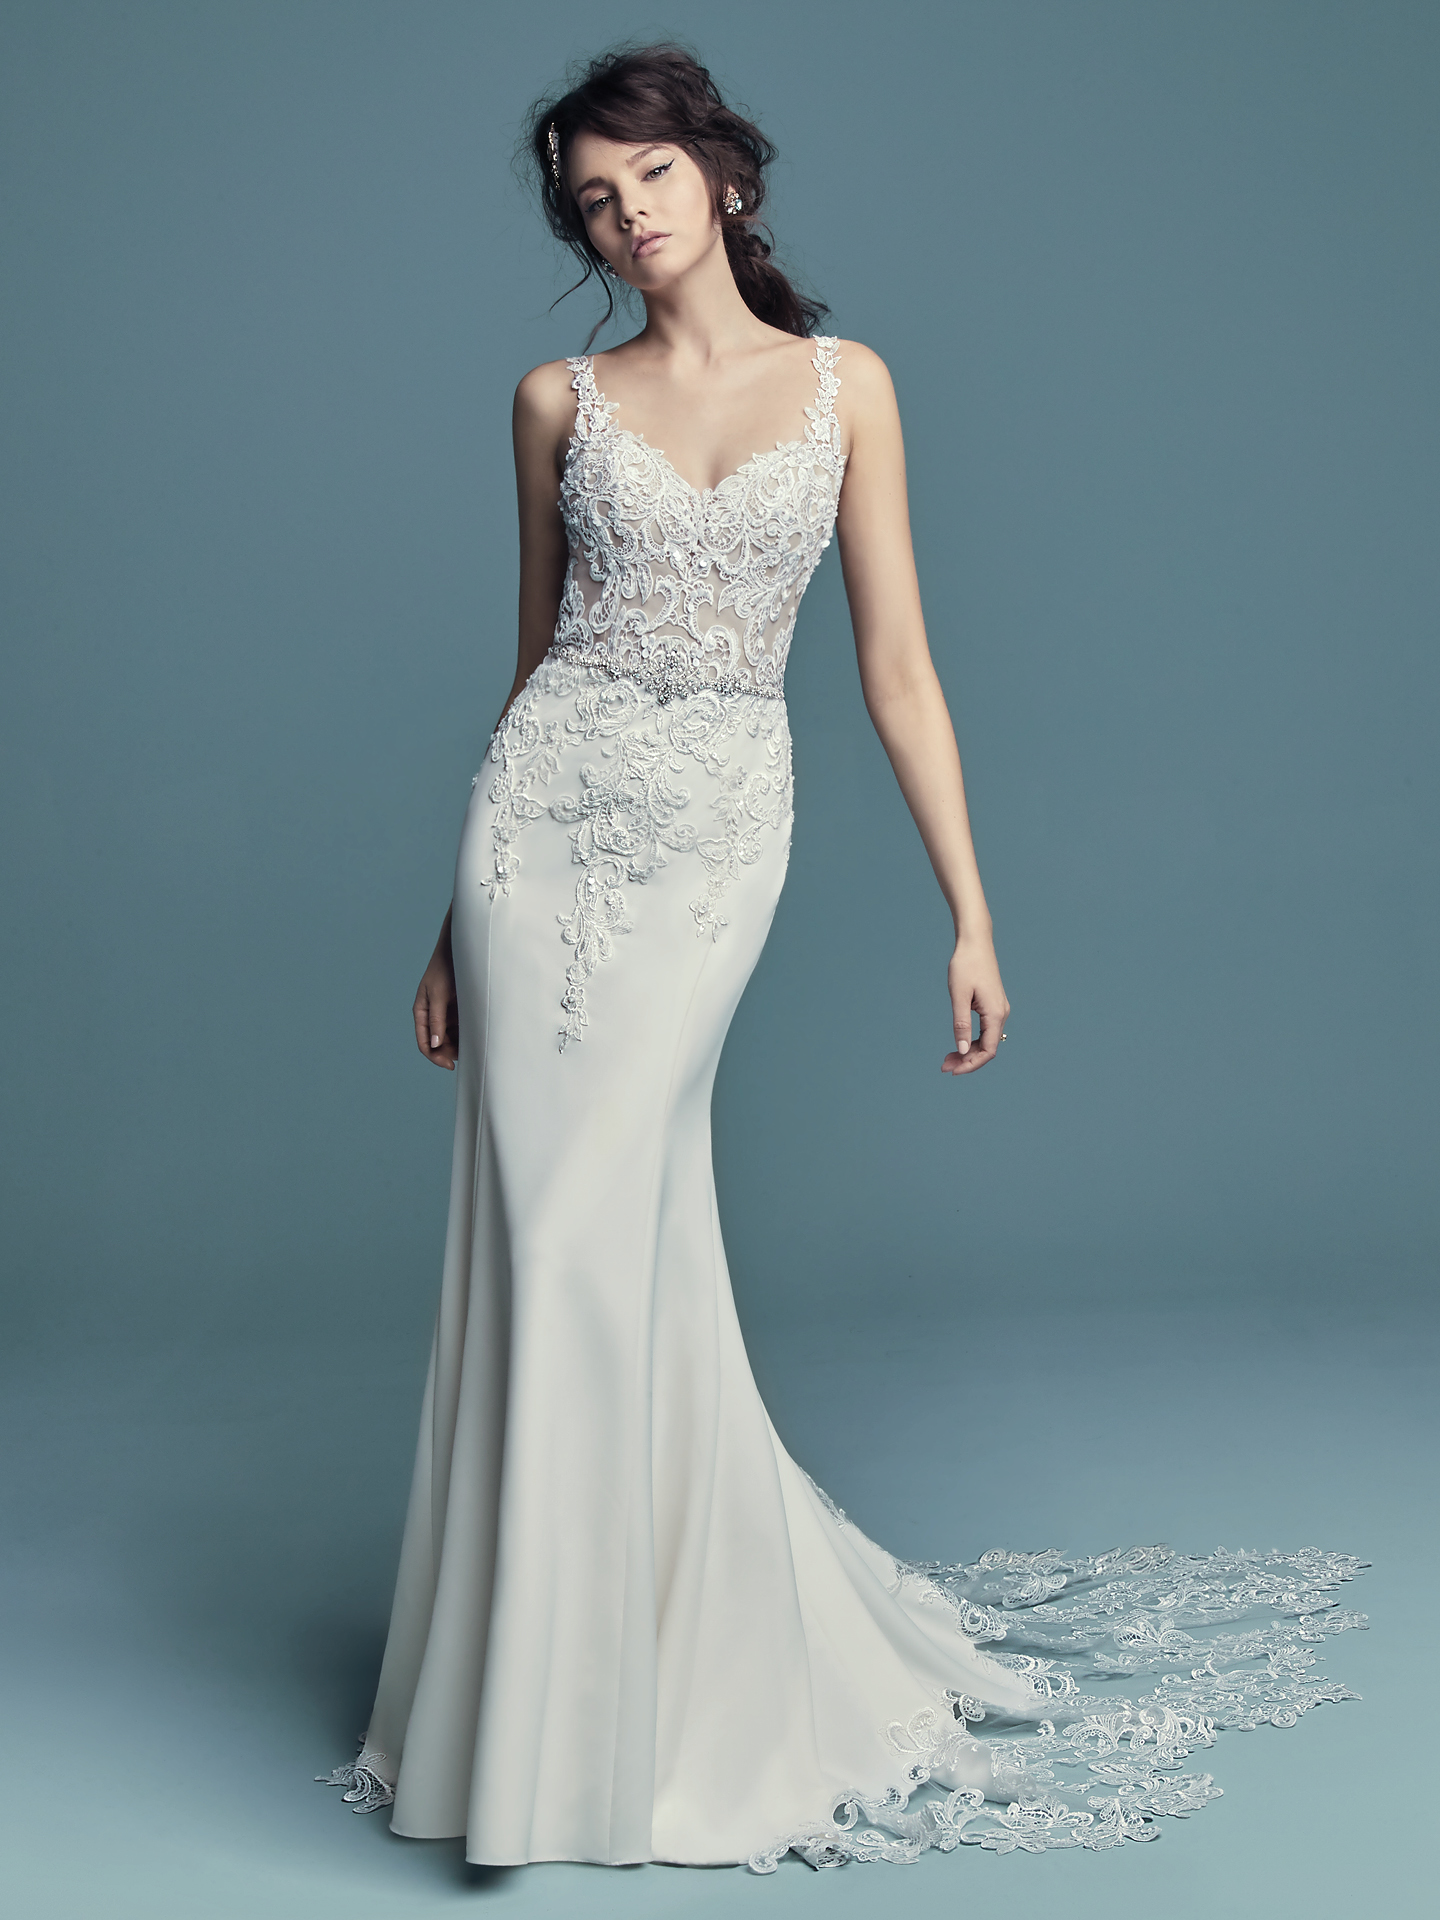 Maggie Sottero - Alaina - Front View